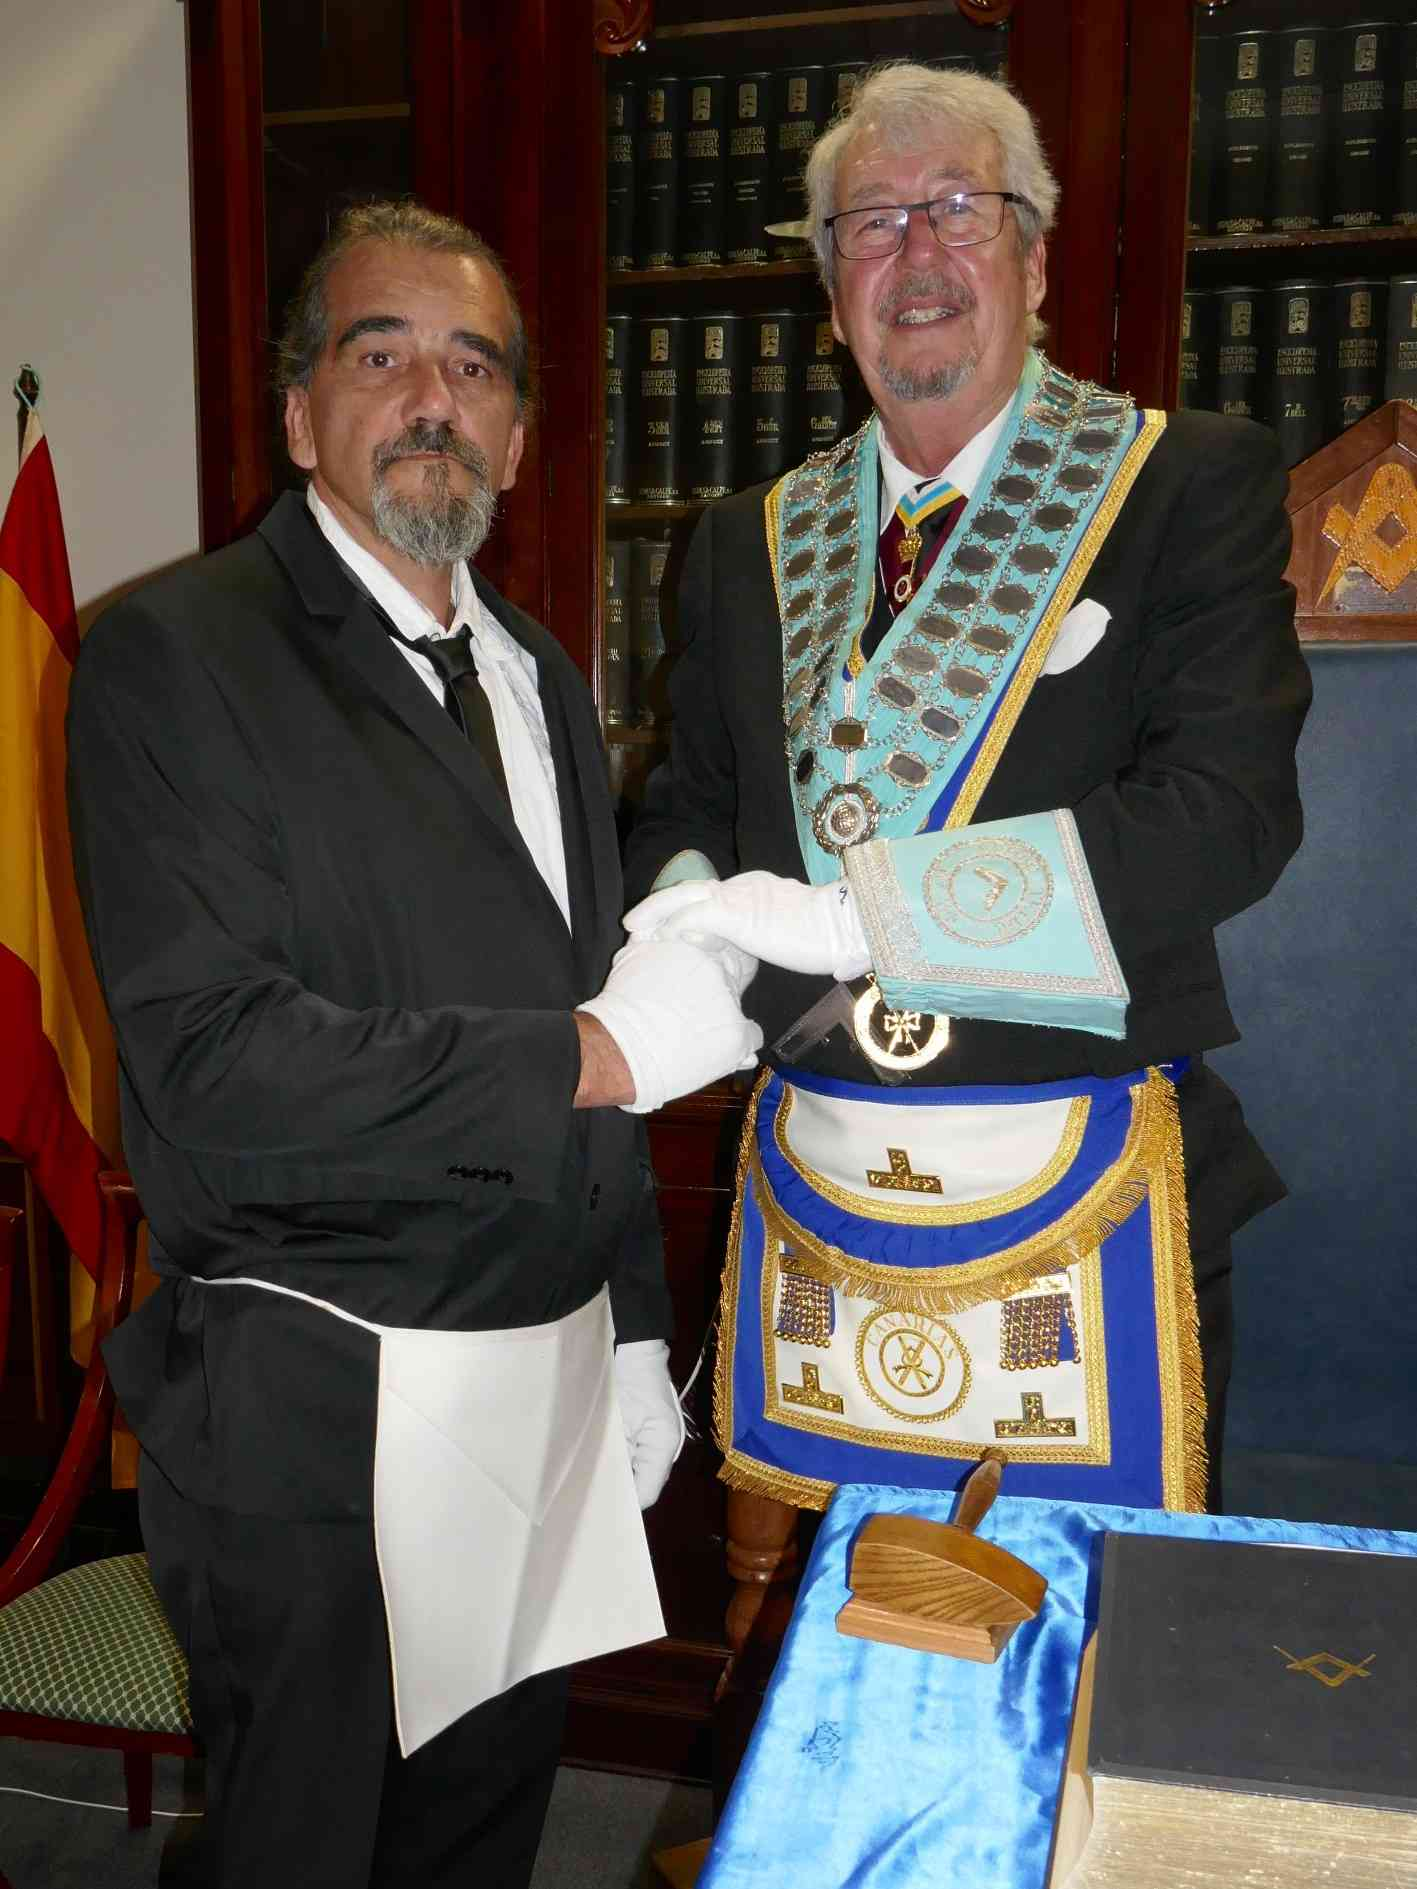 WM with newly initiated Roland Brunk